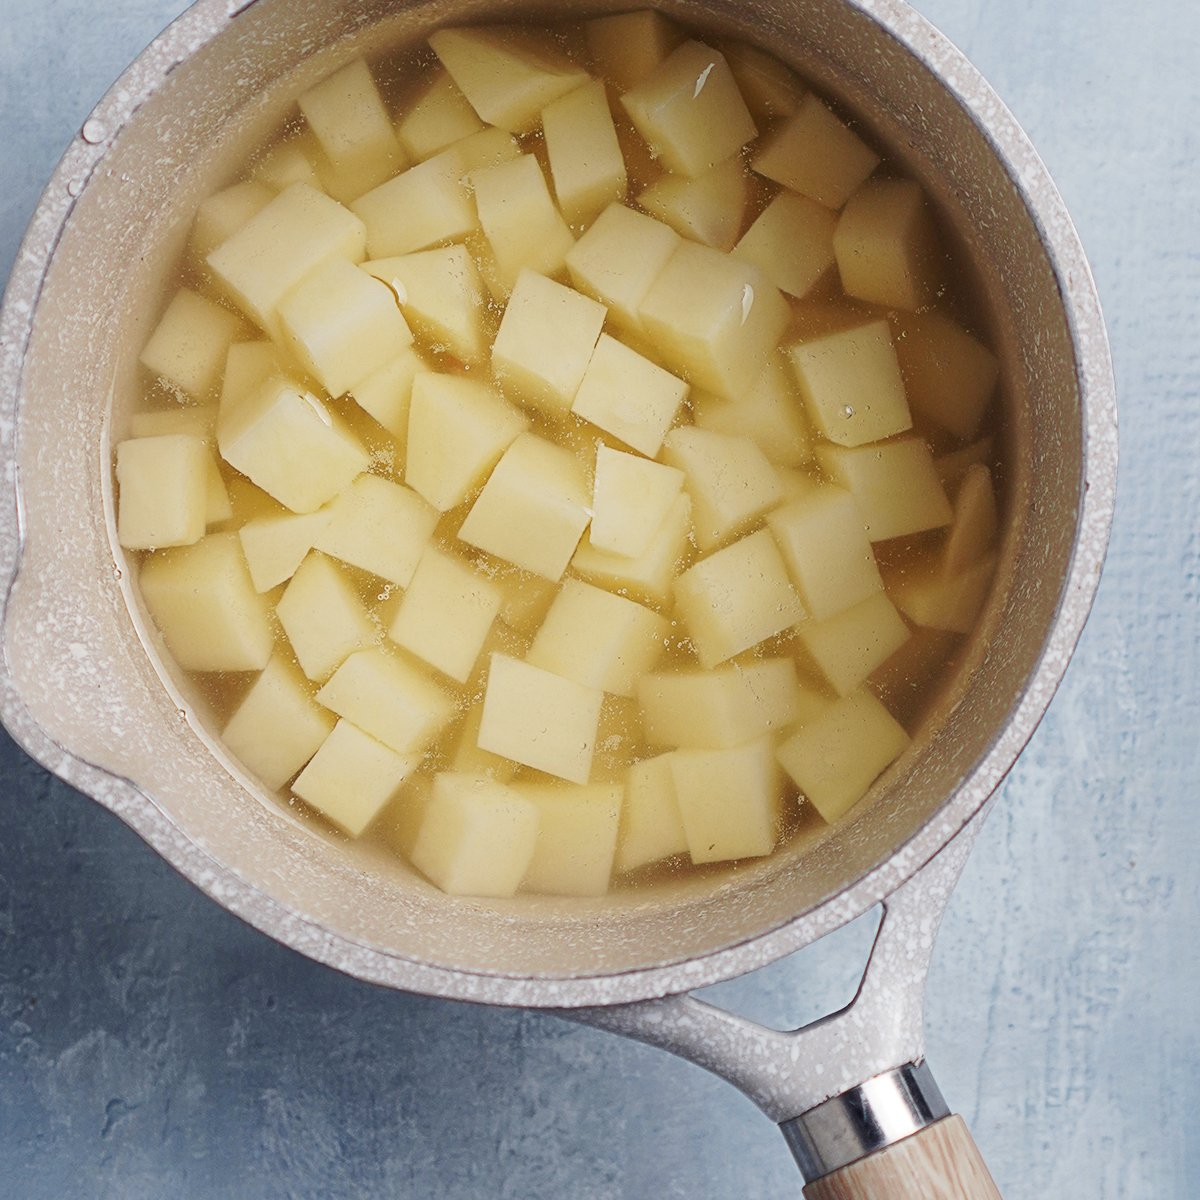 Cubed potatoes in a small saucepan with water.